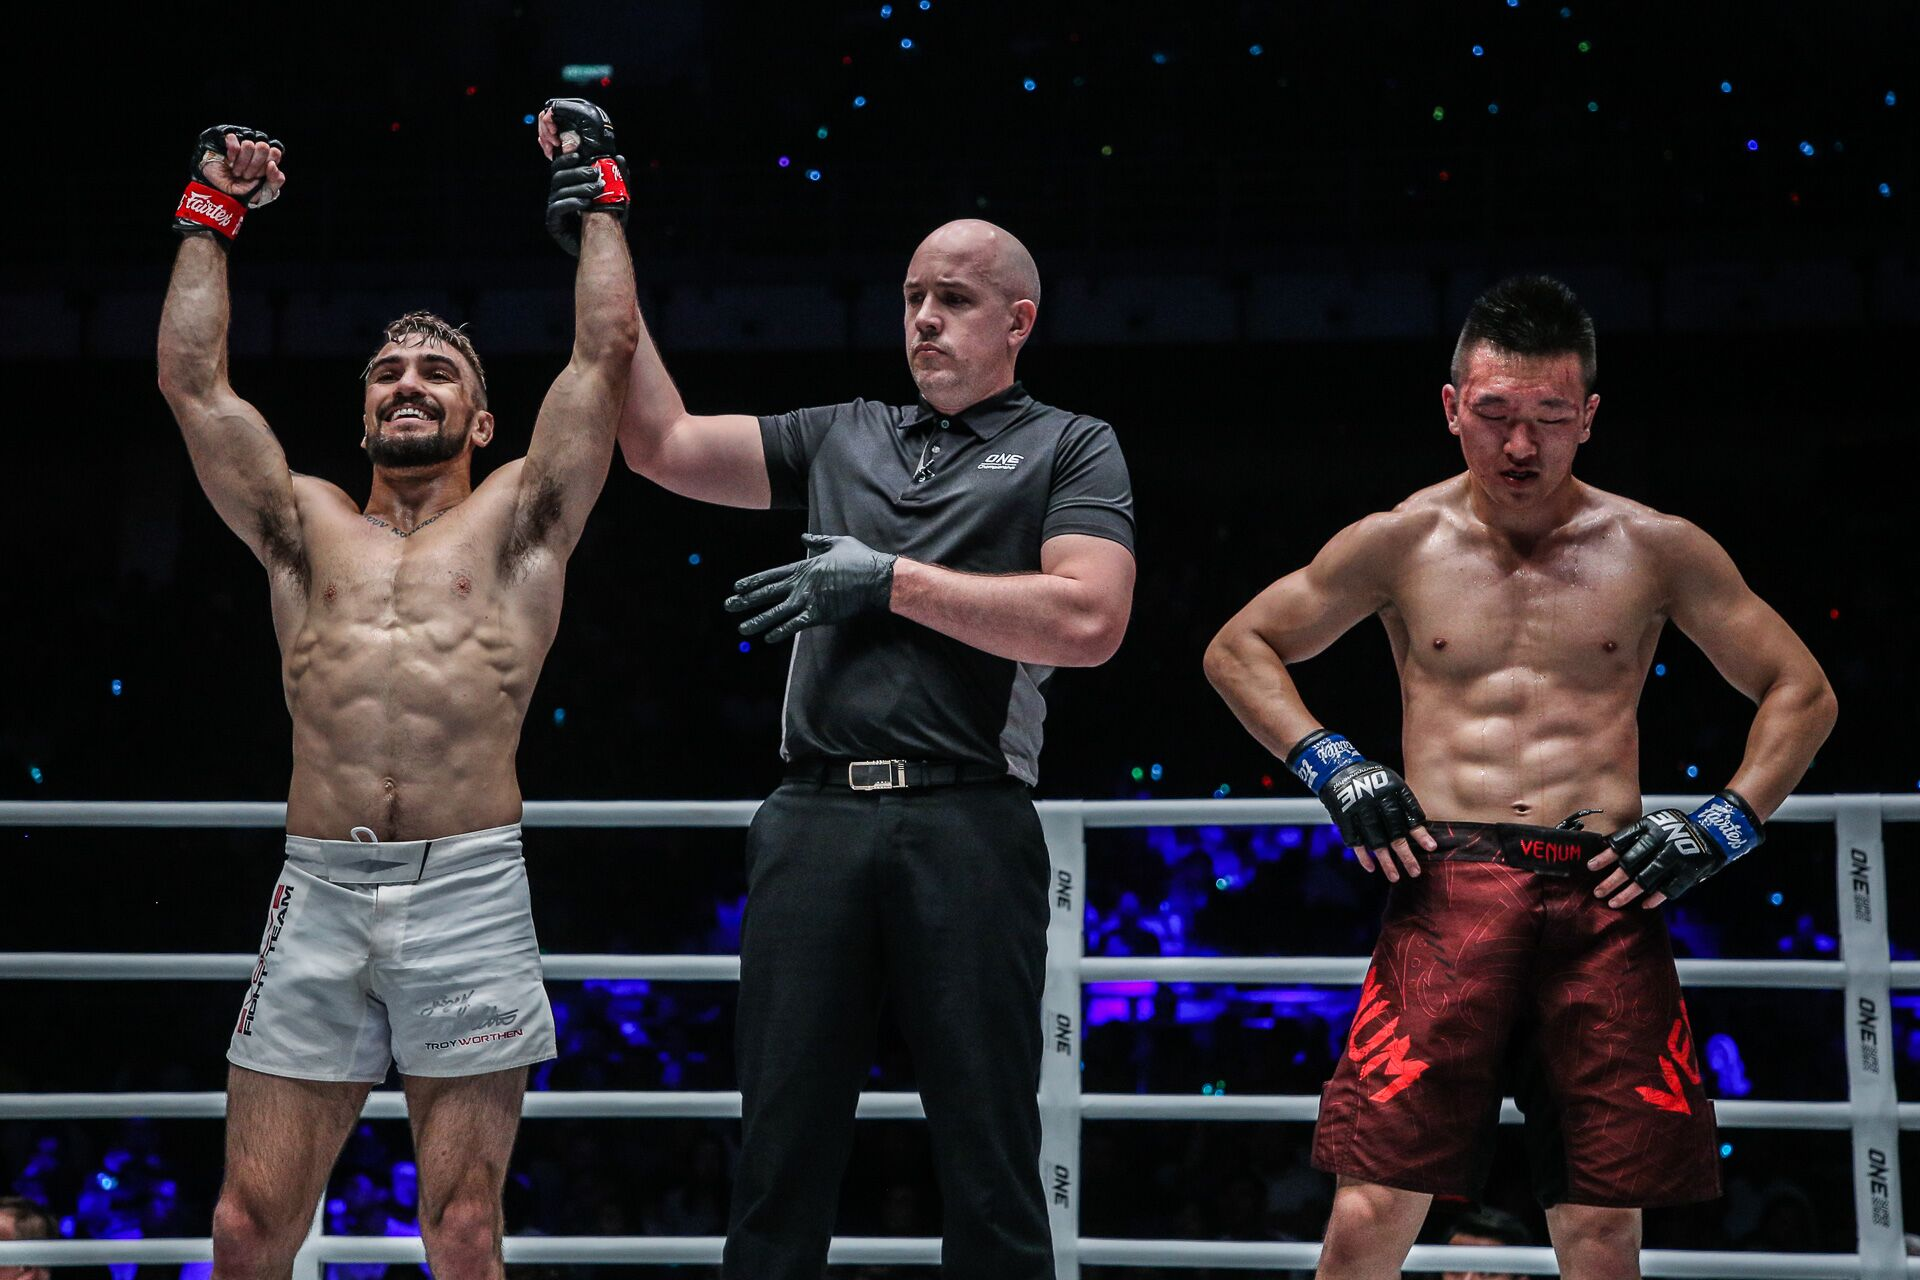 Troy Worthen defeats Chen Rui at ONE: Masters of Destiny